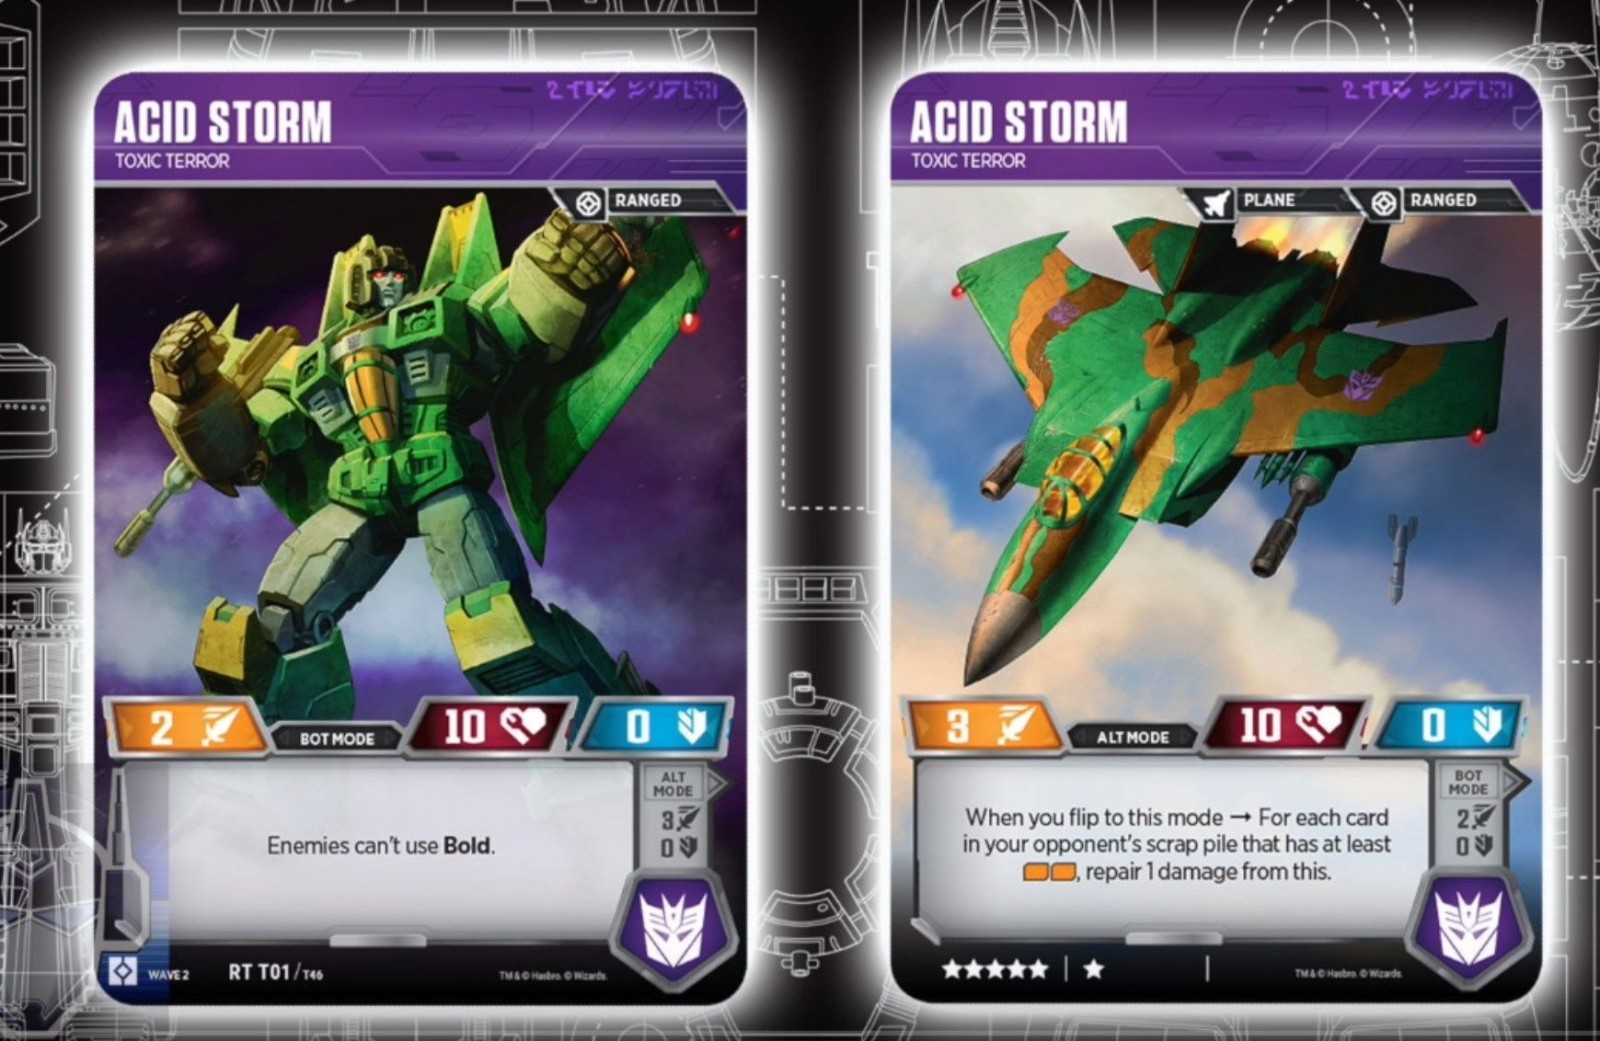 Transformers News: Acid Storm Art and Thrust, Nova Star Revealed For Transformers Trading Card Game and More